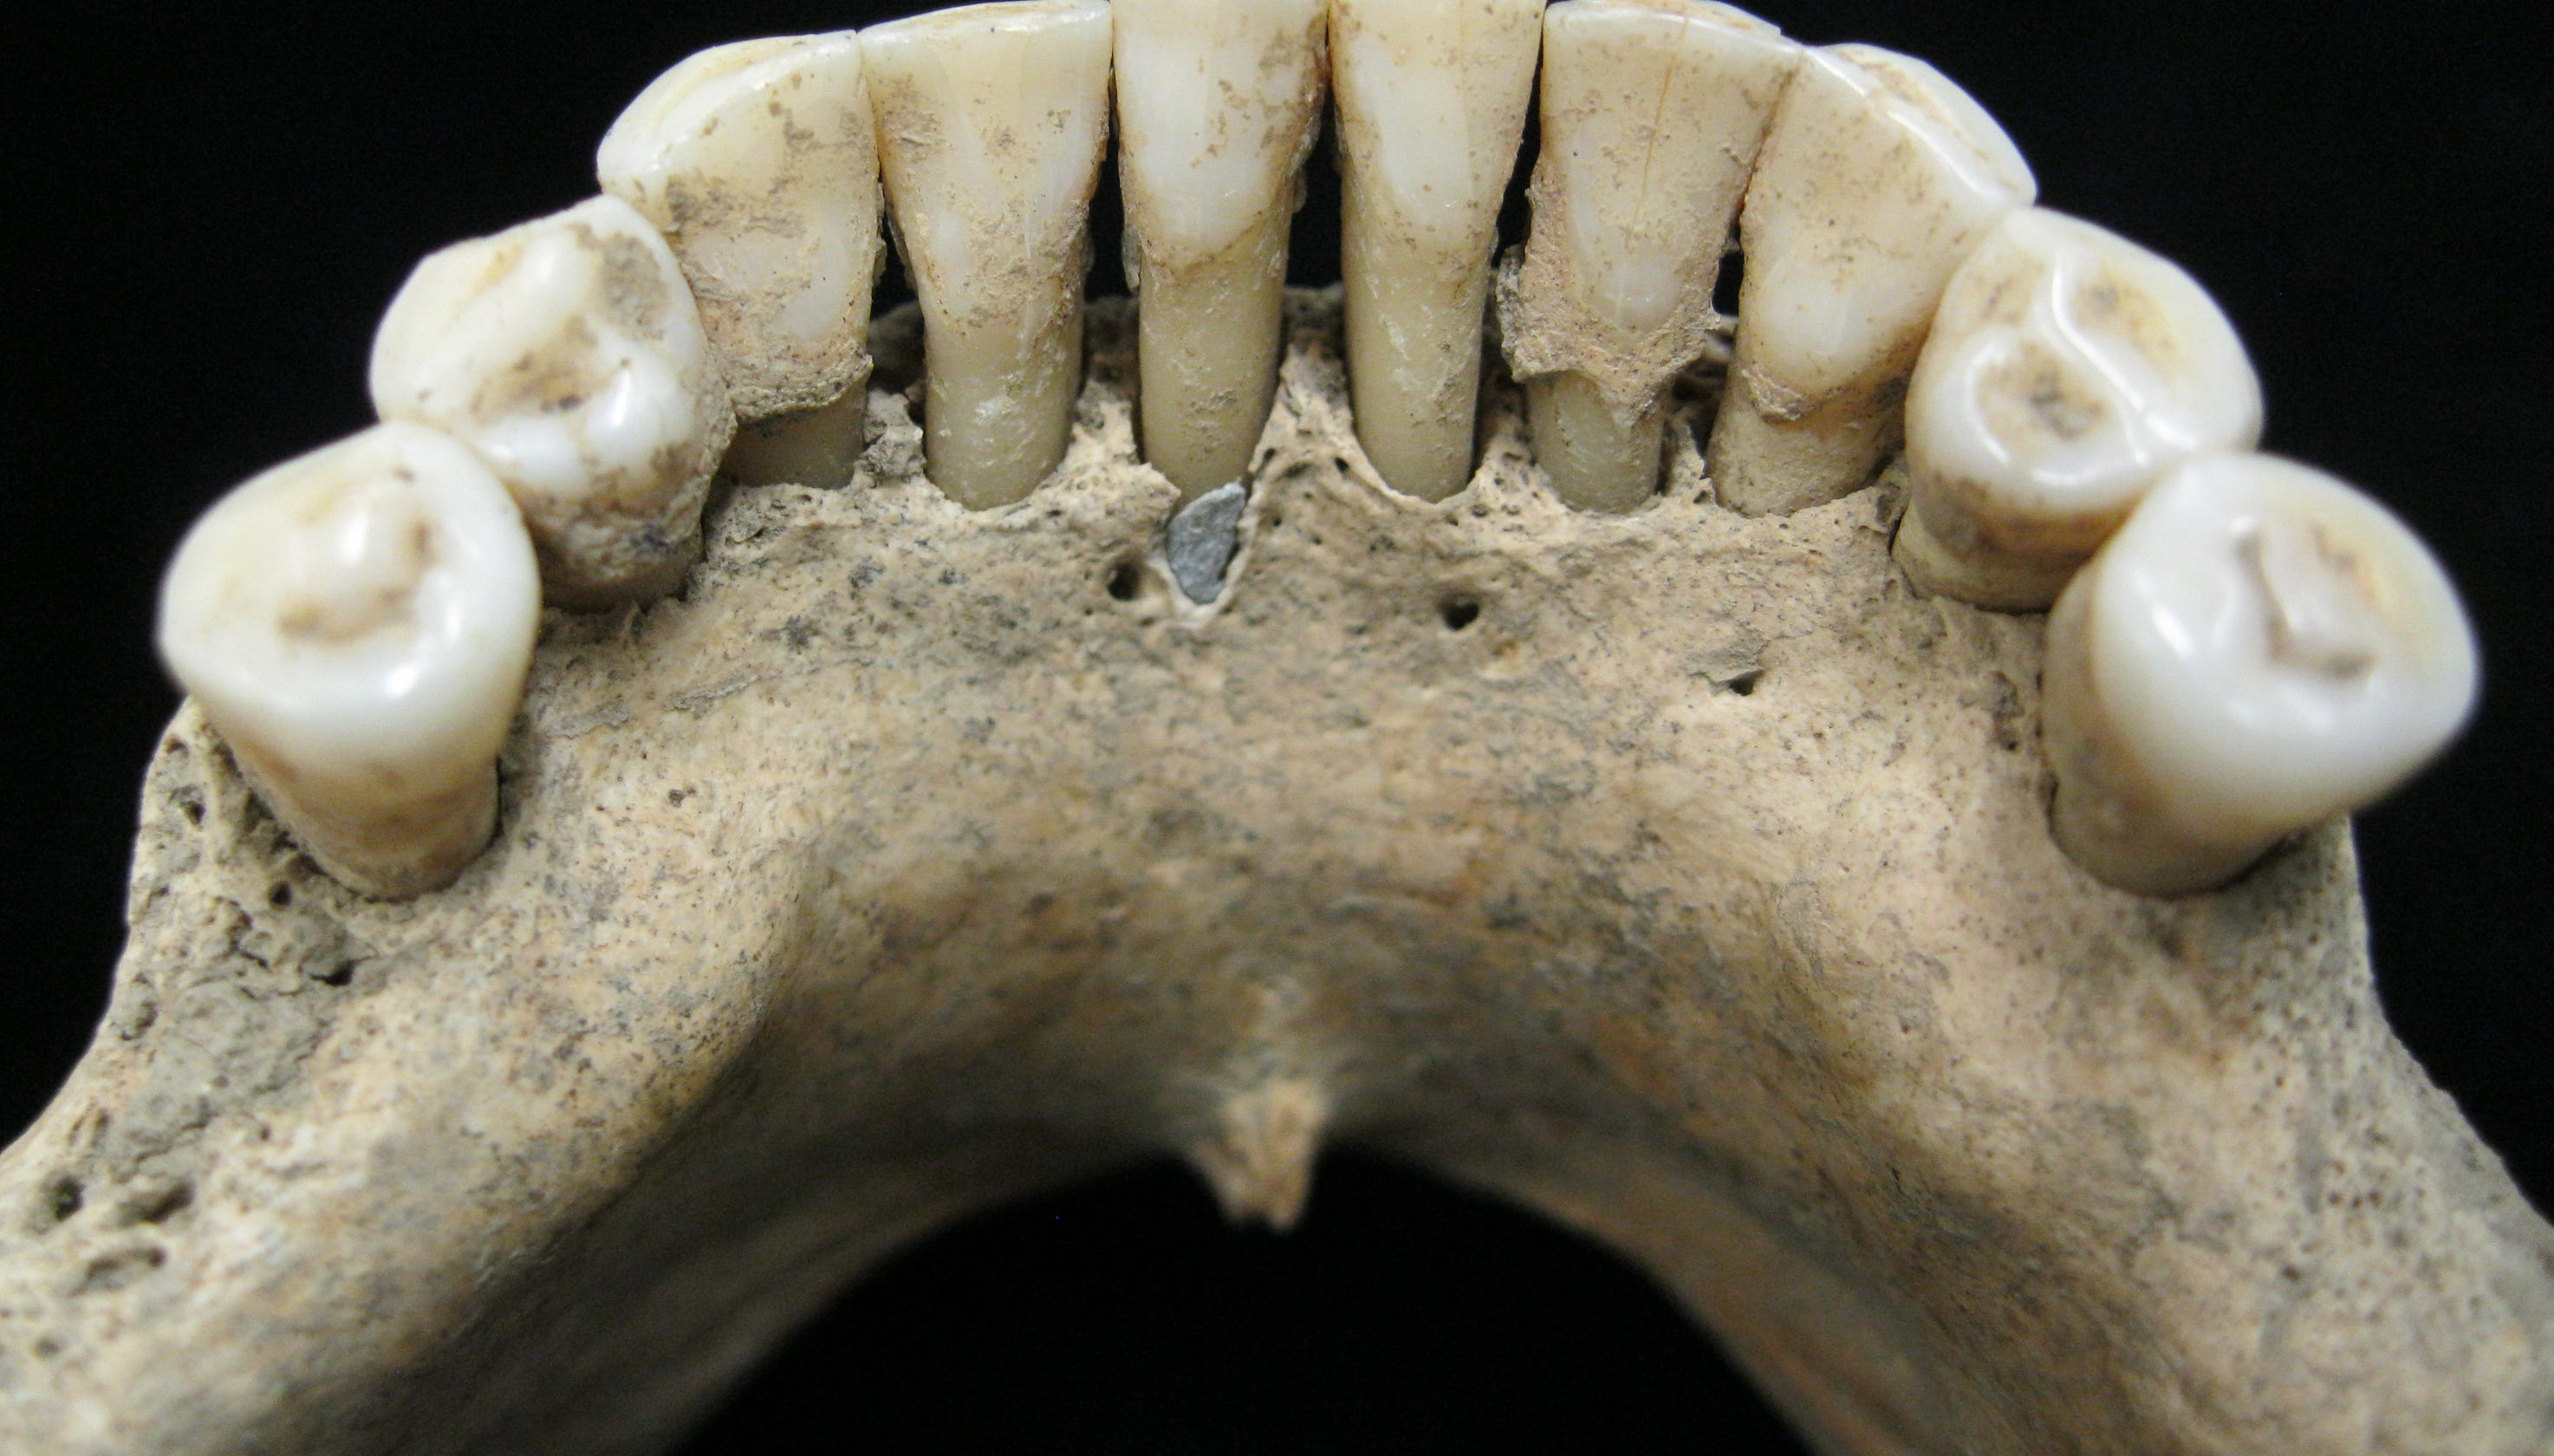 Medieval skeleton found with rare, expensive blue ink embedded in teeth, could rewrite women's history